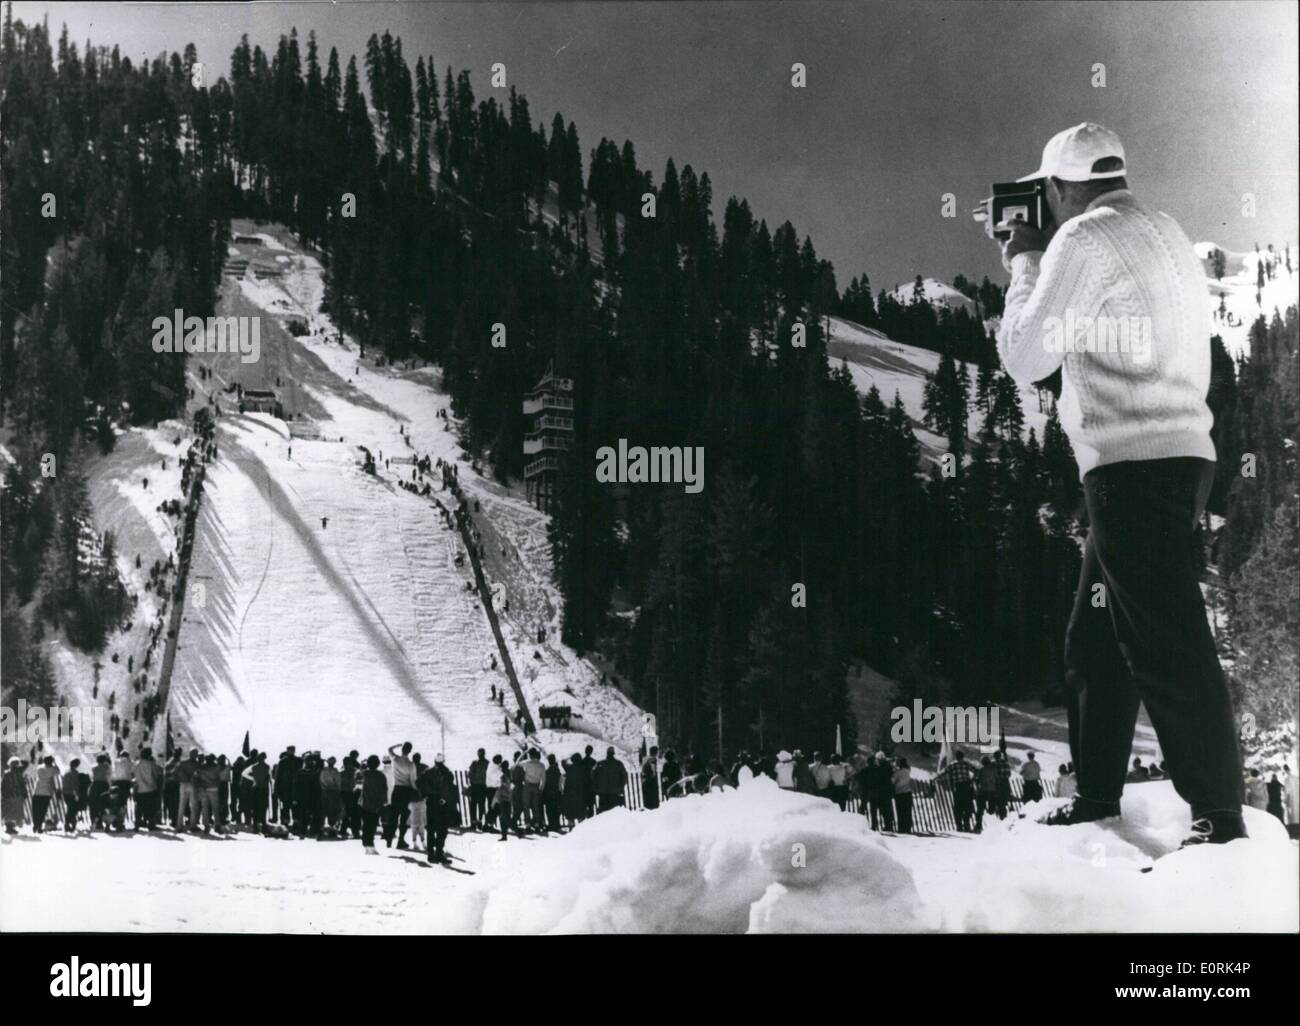 d0d5db05671 Olympic Squaw Valley Stock Photos   Olympic Squaw Valley Stock ...